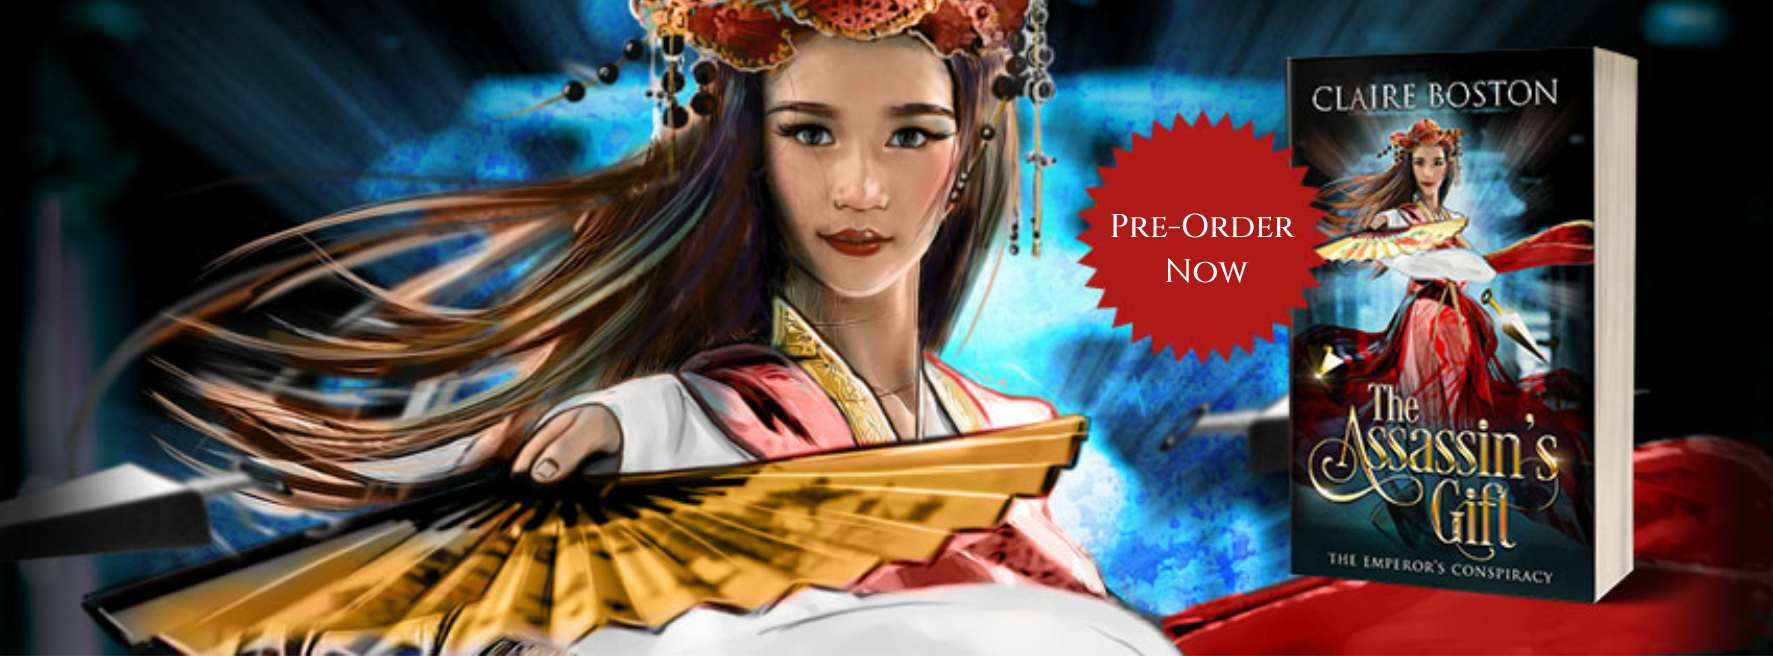 Pre-order Assassin's Gift today